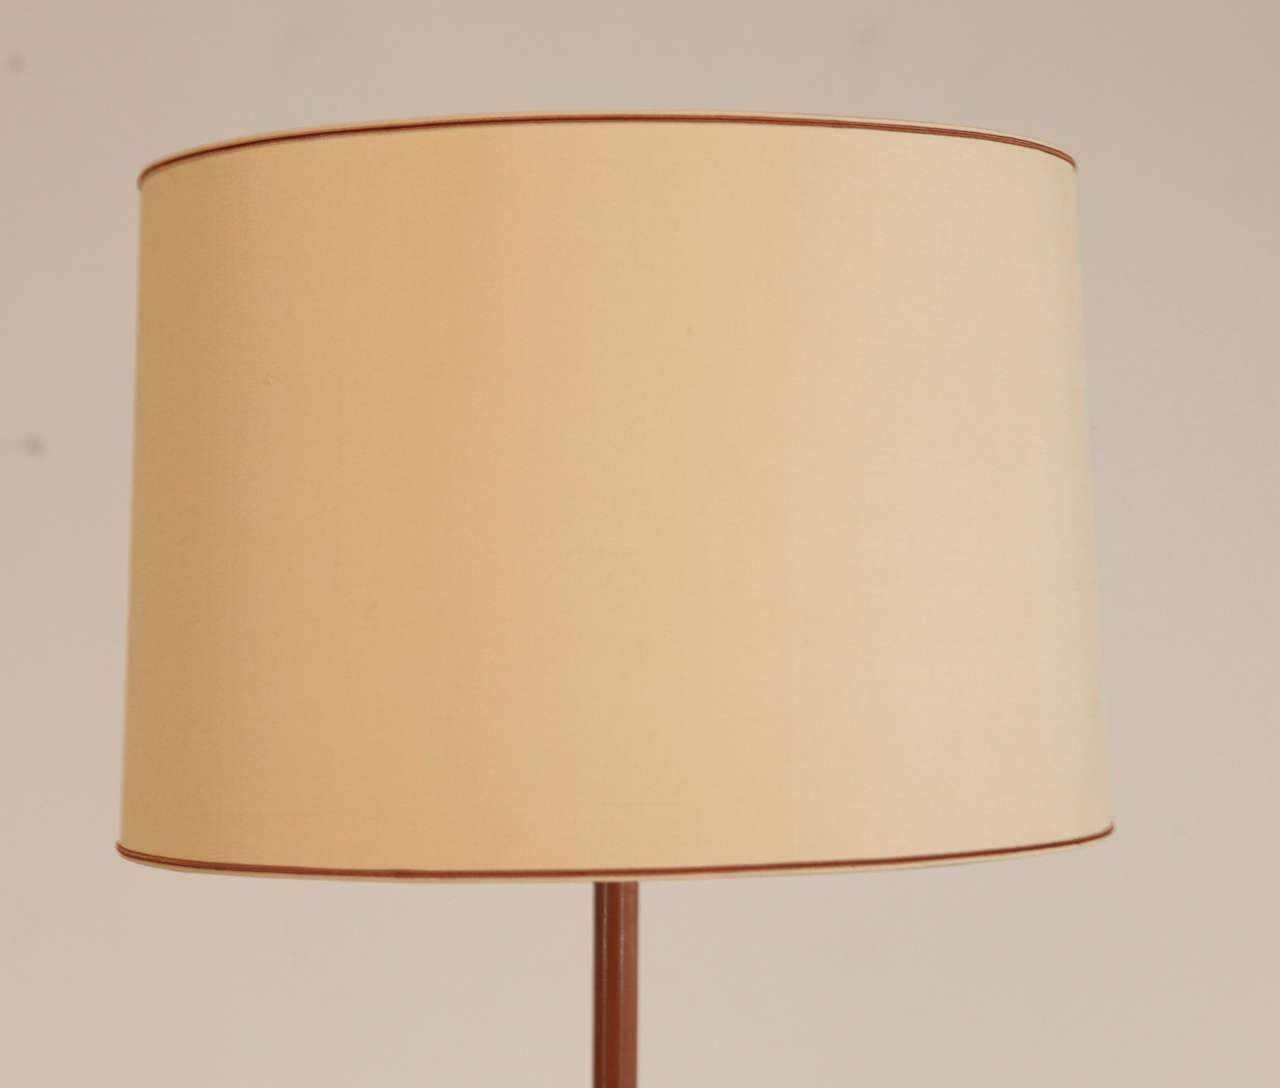 French Jacques Adnet Leather Bound Floor Lamp For Sale